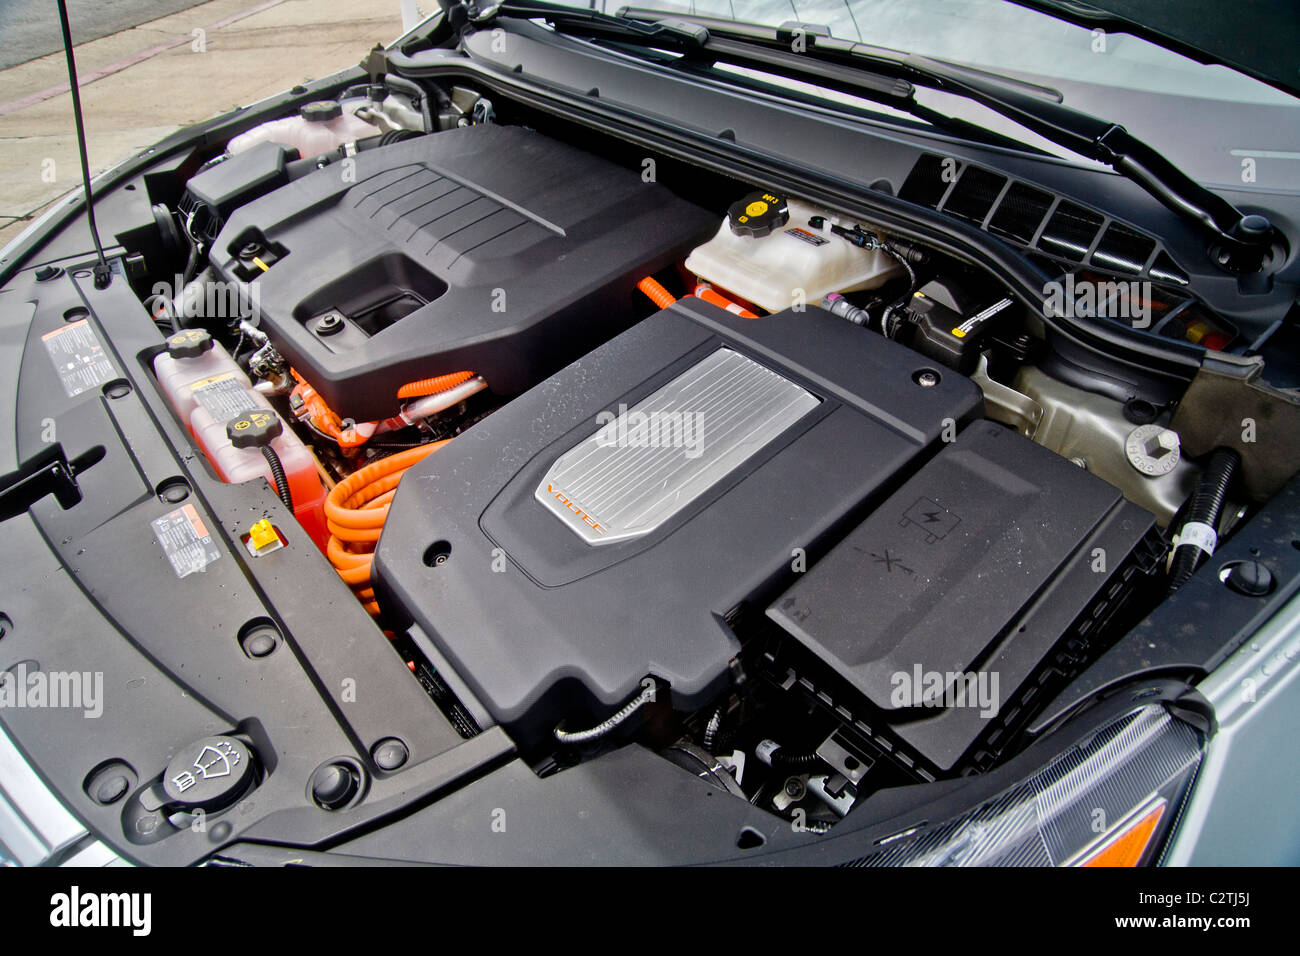 The Engine Compartment Of A Chevrolet Volt Hybrid Gas Electric Car